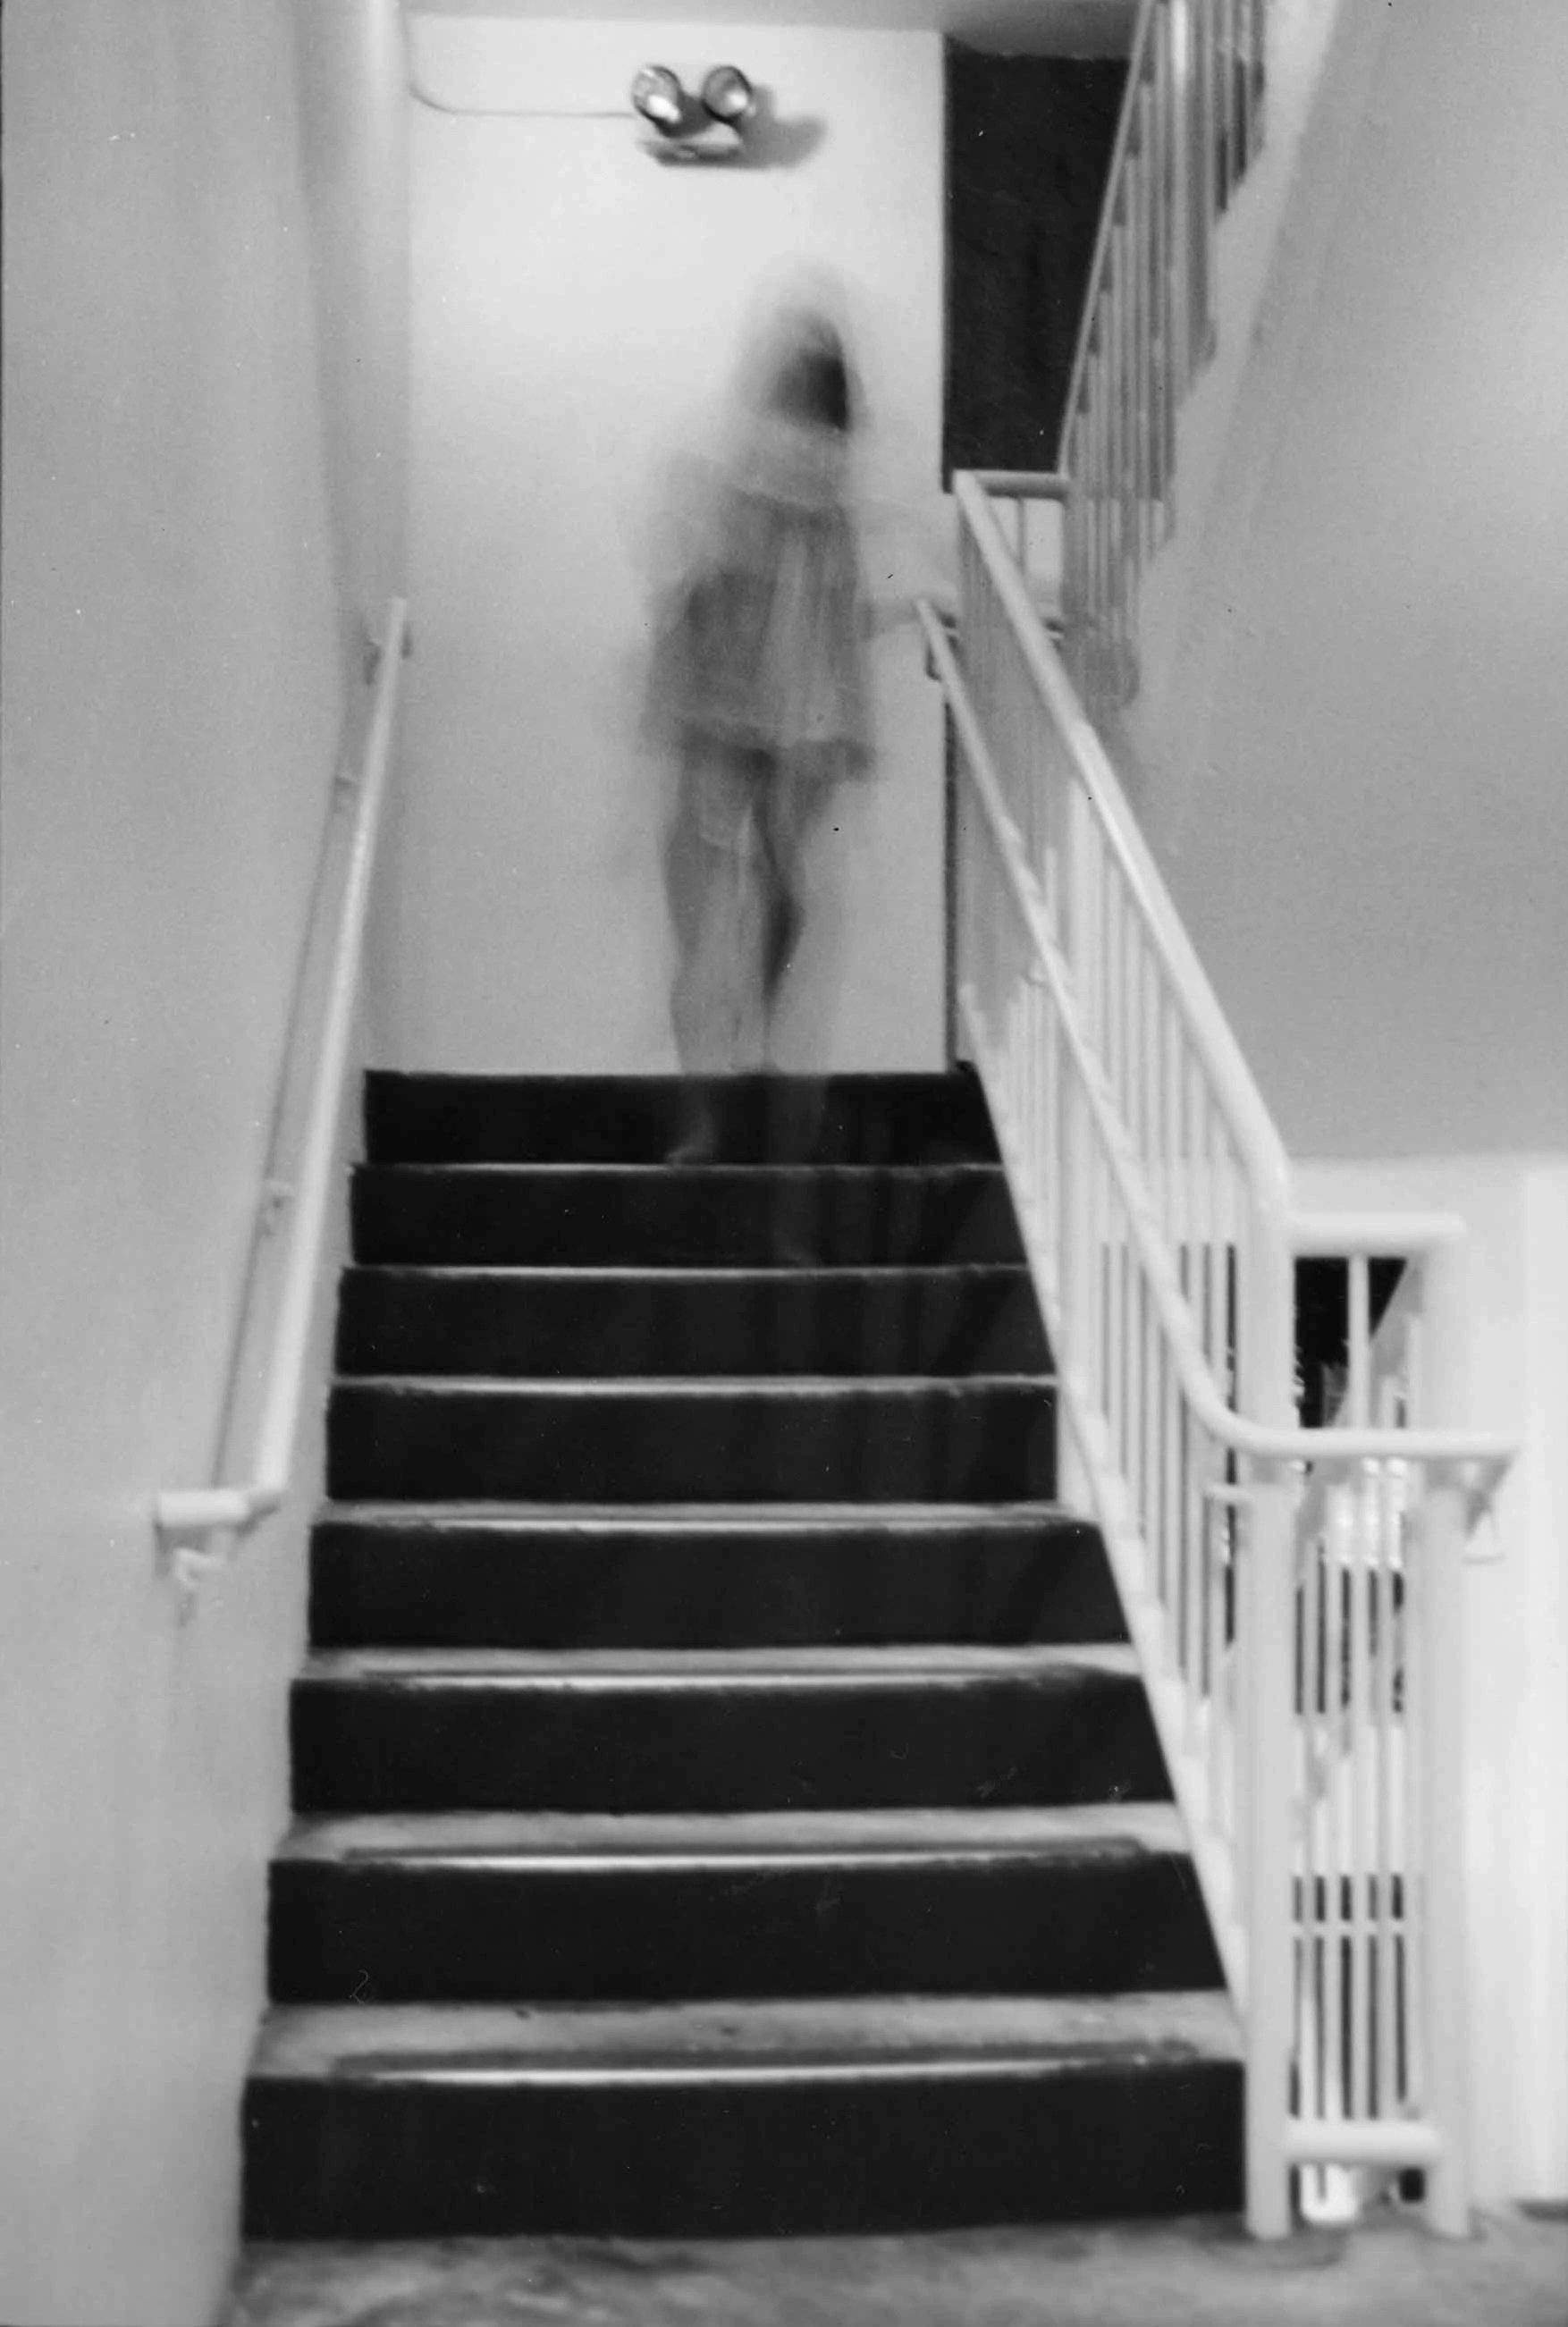 Creepy Scary Ghost On Stairs